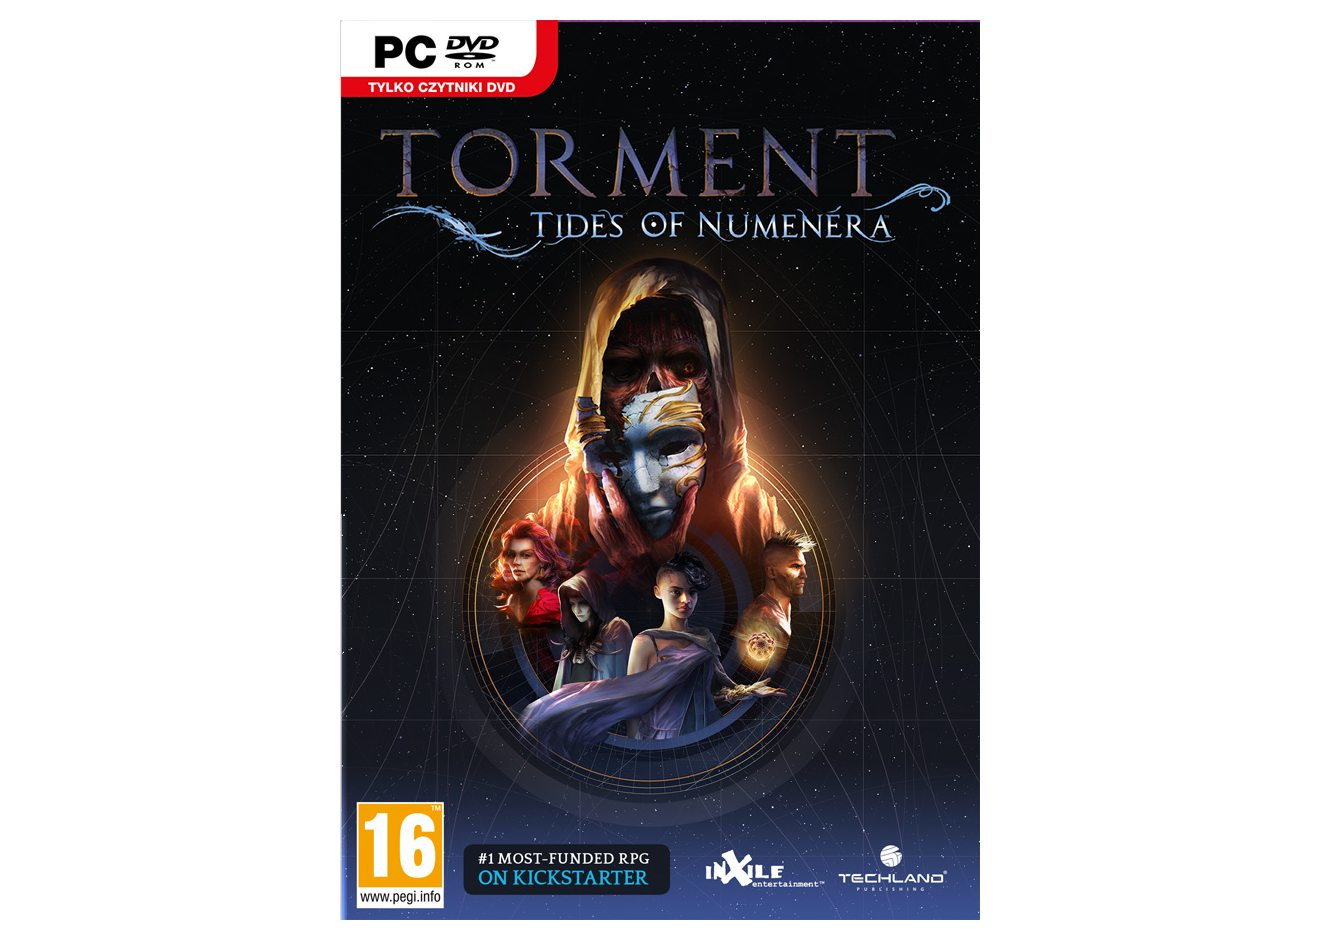 PC Torment: Tides of Numenera PC